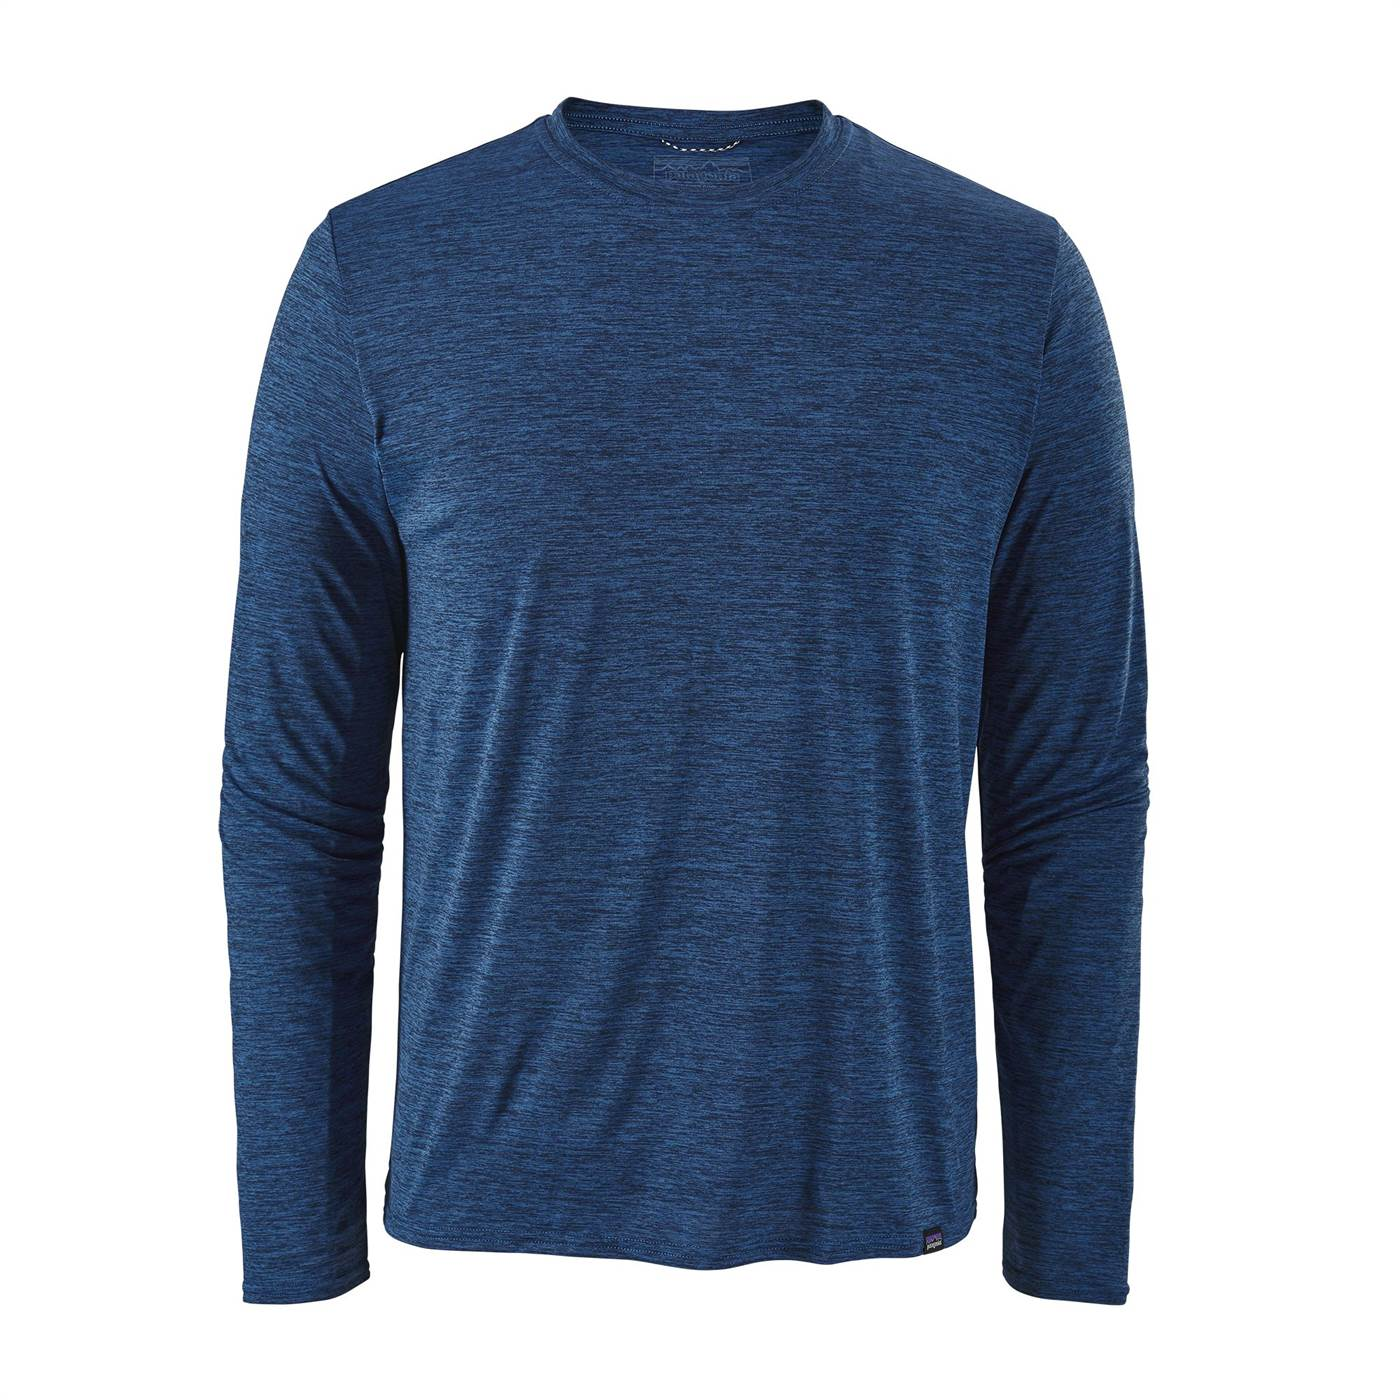 Cap Cool Daily Shirt Long Sleeve - Men's